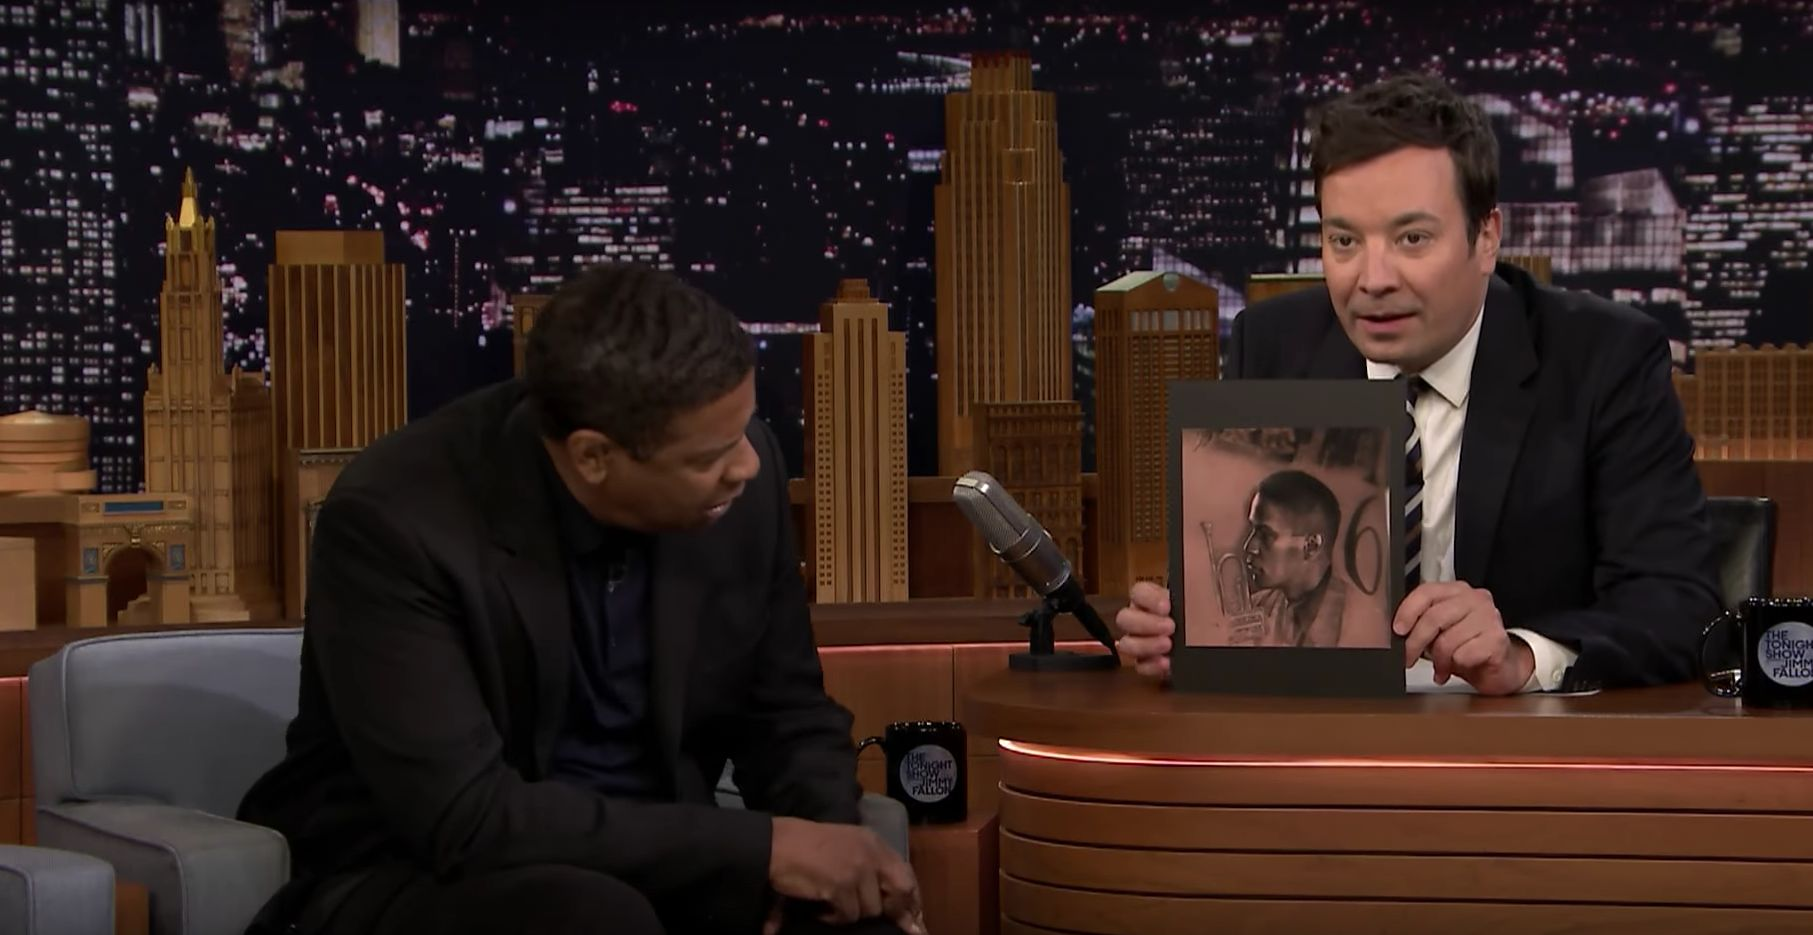 Denzel Washington Has One Big Question After Seeing Drake's Tattoo Of His